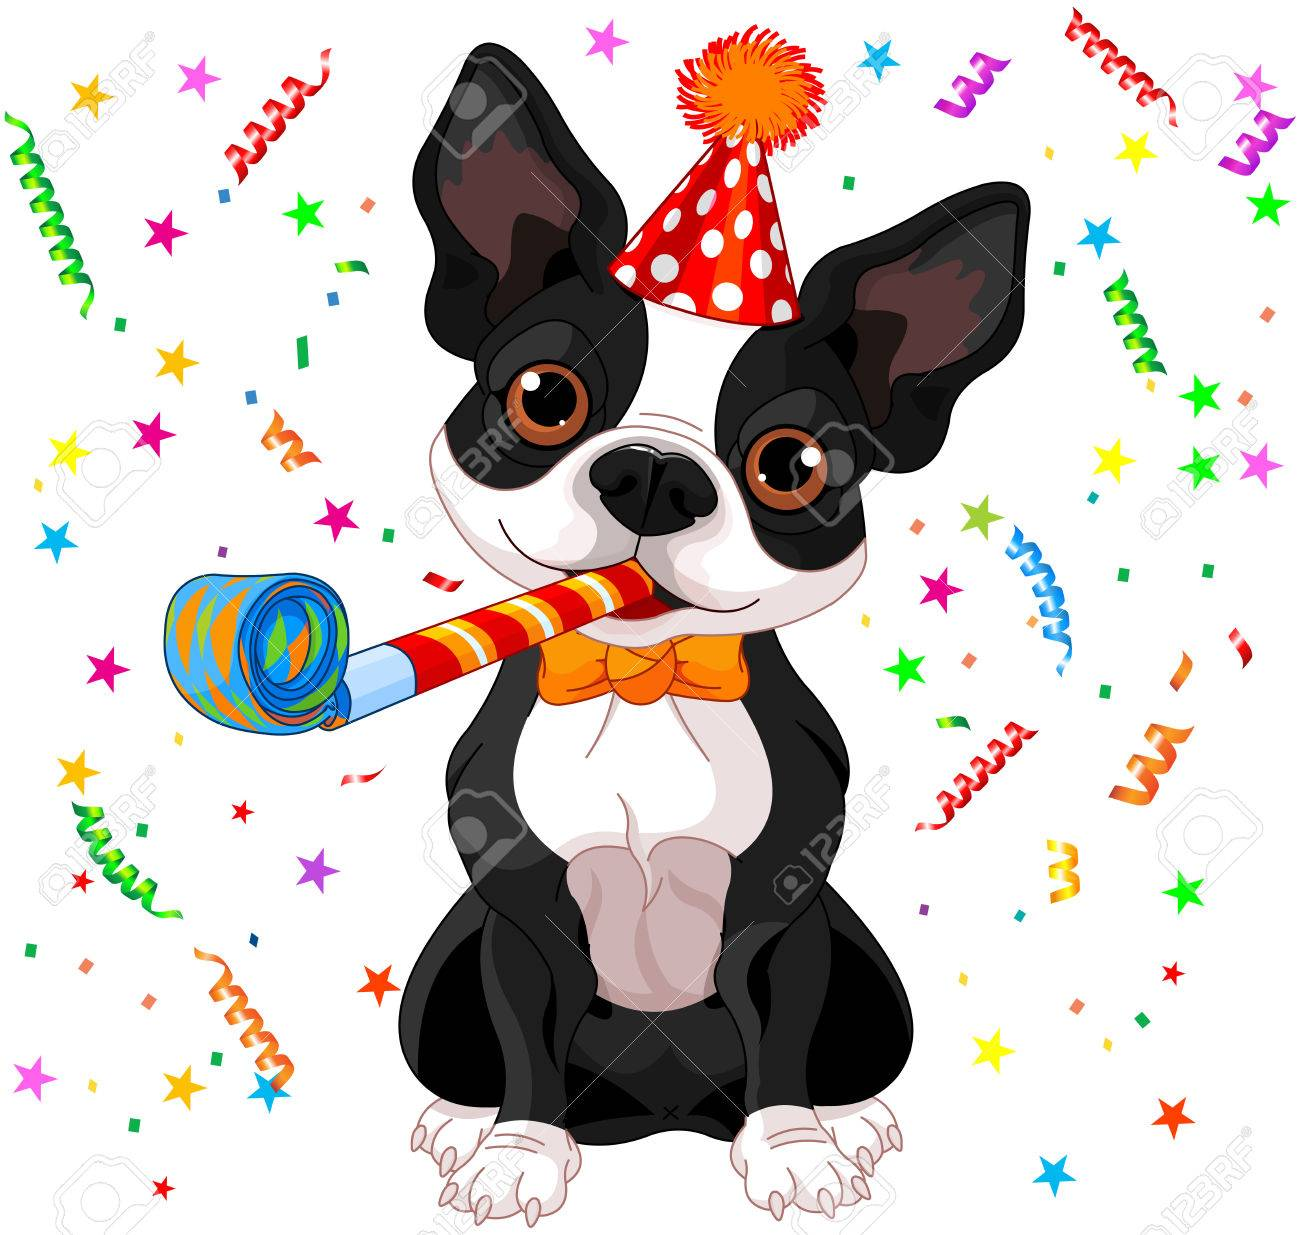 Gestion de l'émotion: prendre un objet en gueule - Page 2 35588778-illustration-of-cute-boston-terrier-celebrating